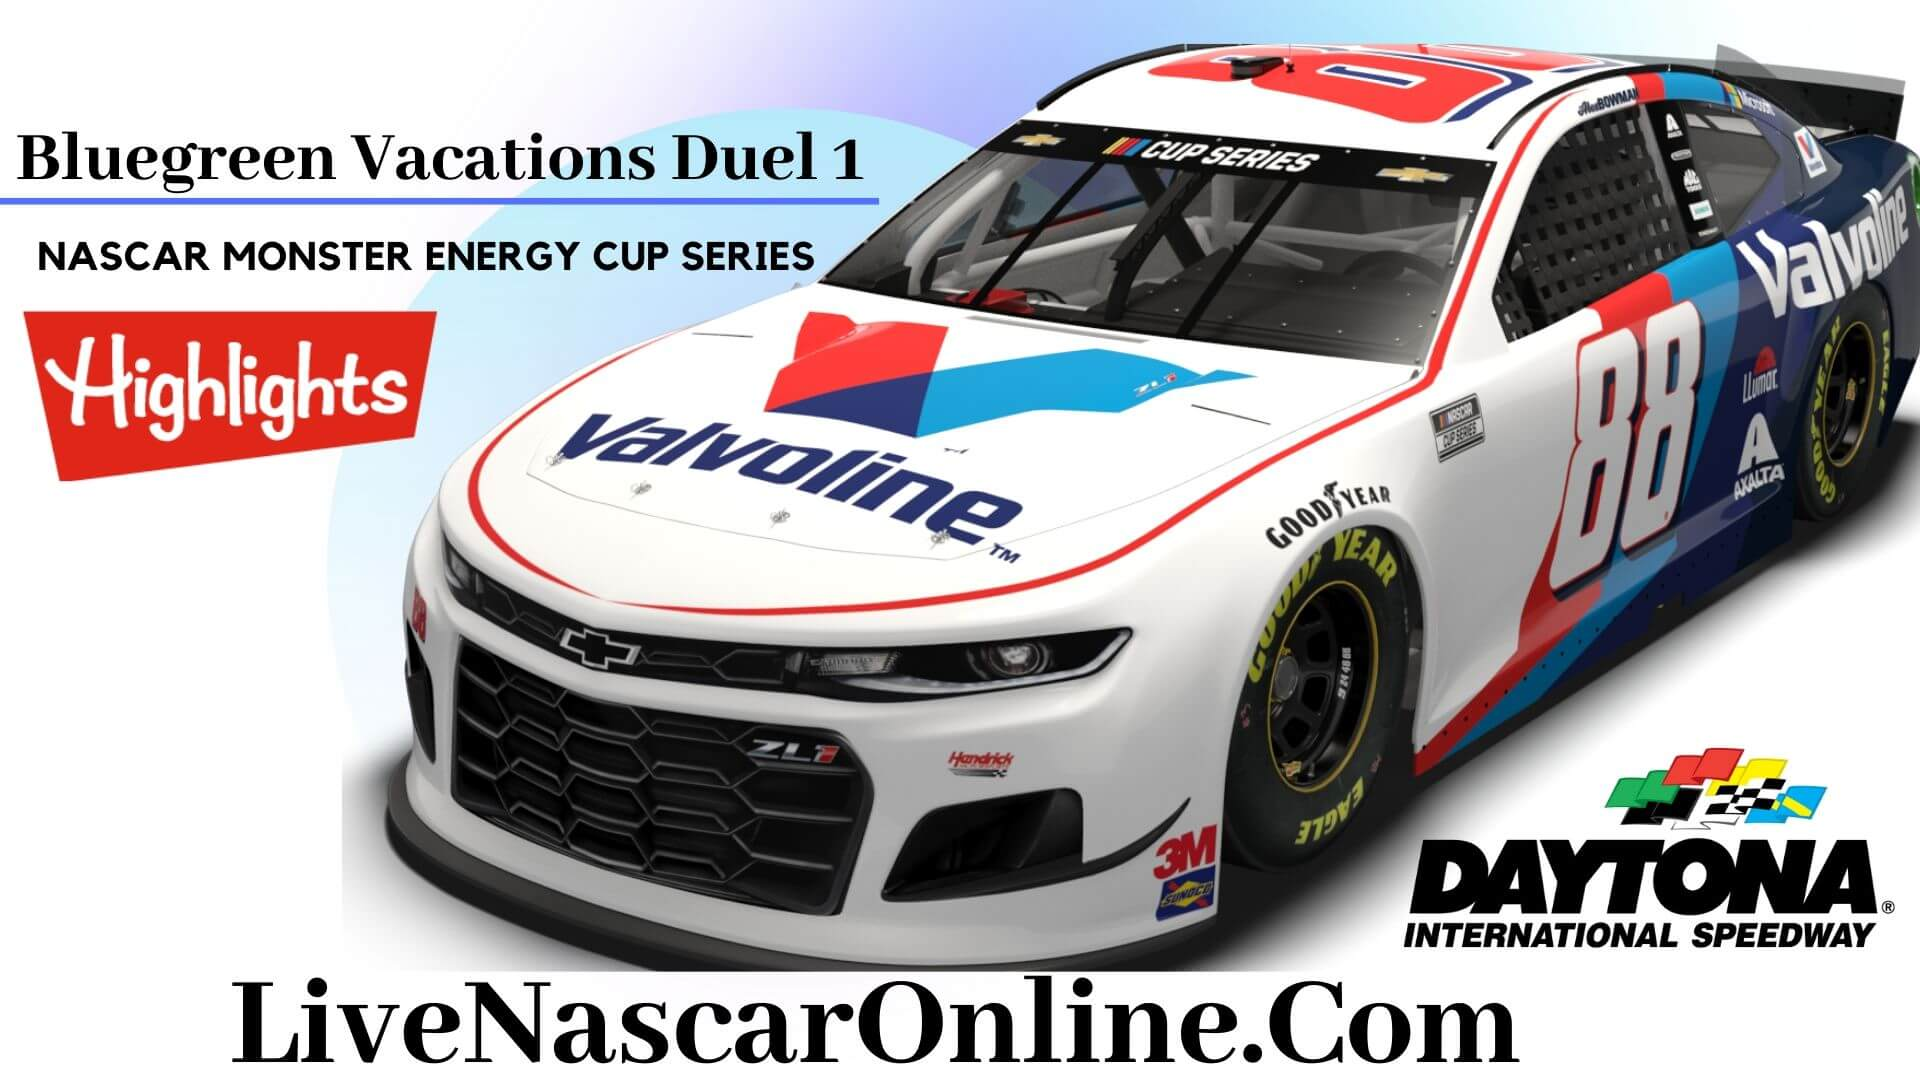 Bluegreen Vacations Duel 1 At Daytona Extended Highlights 2020